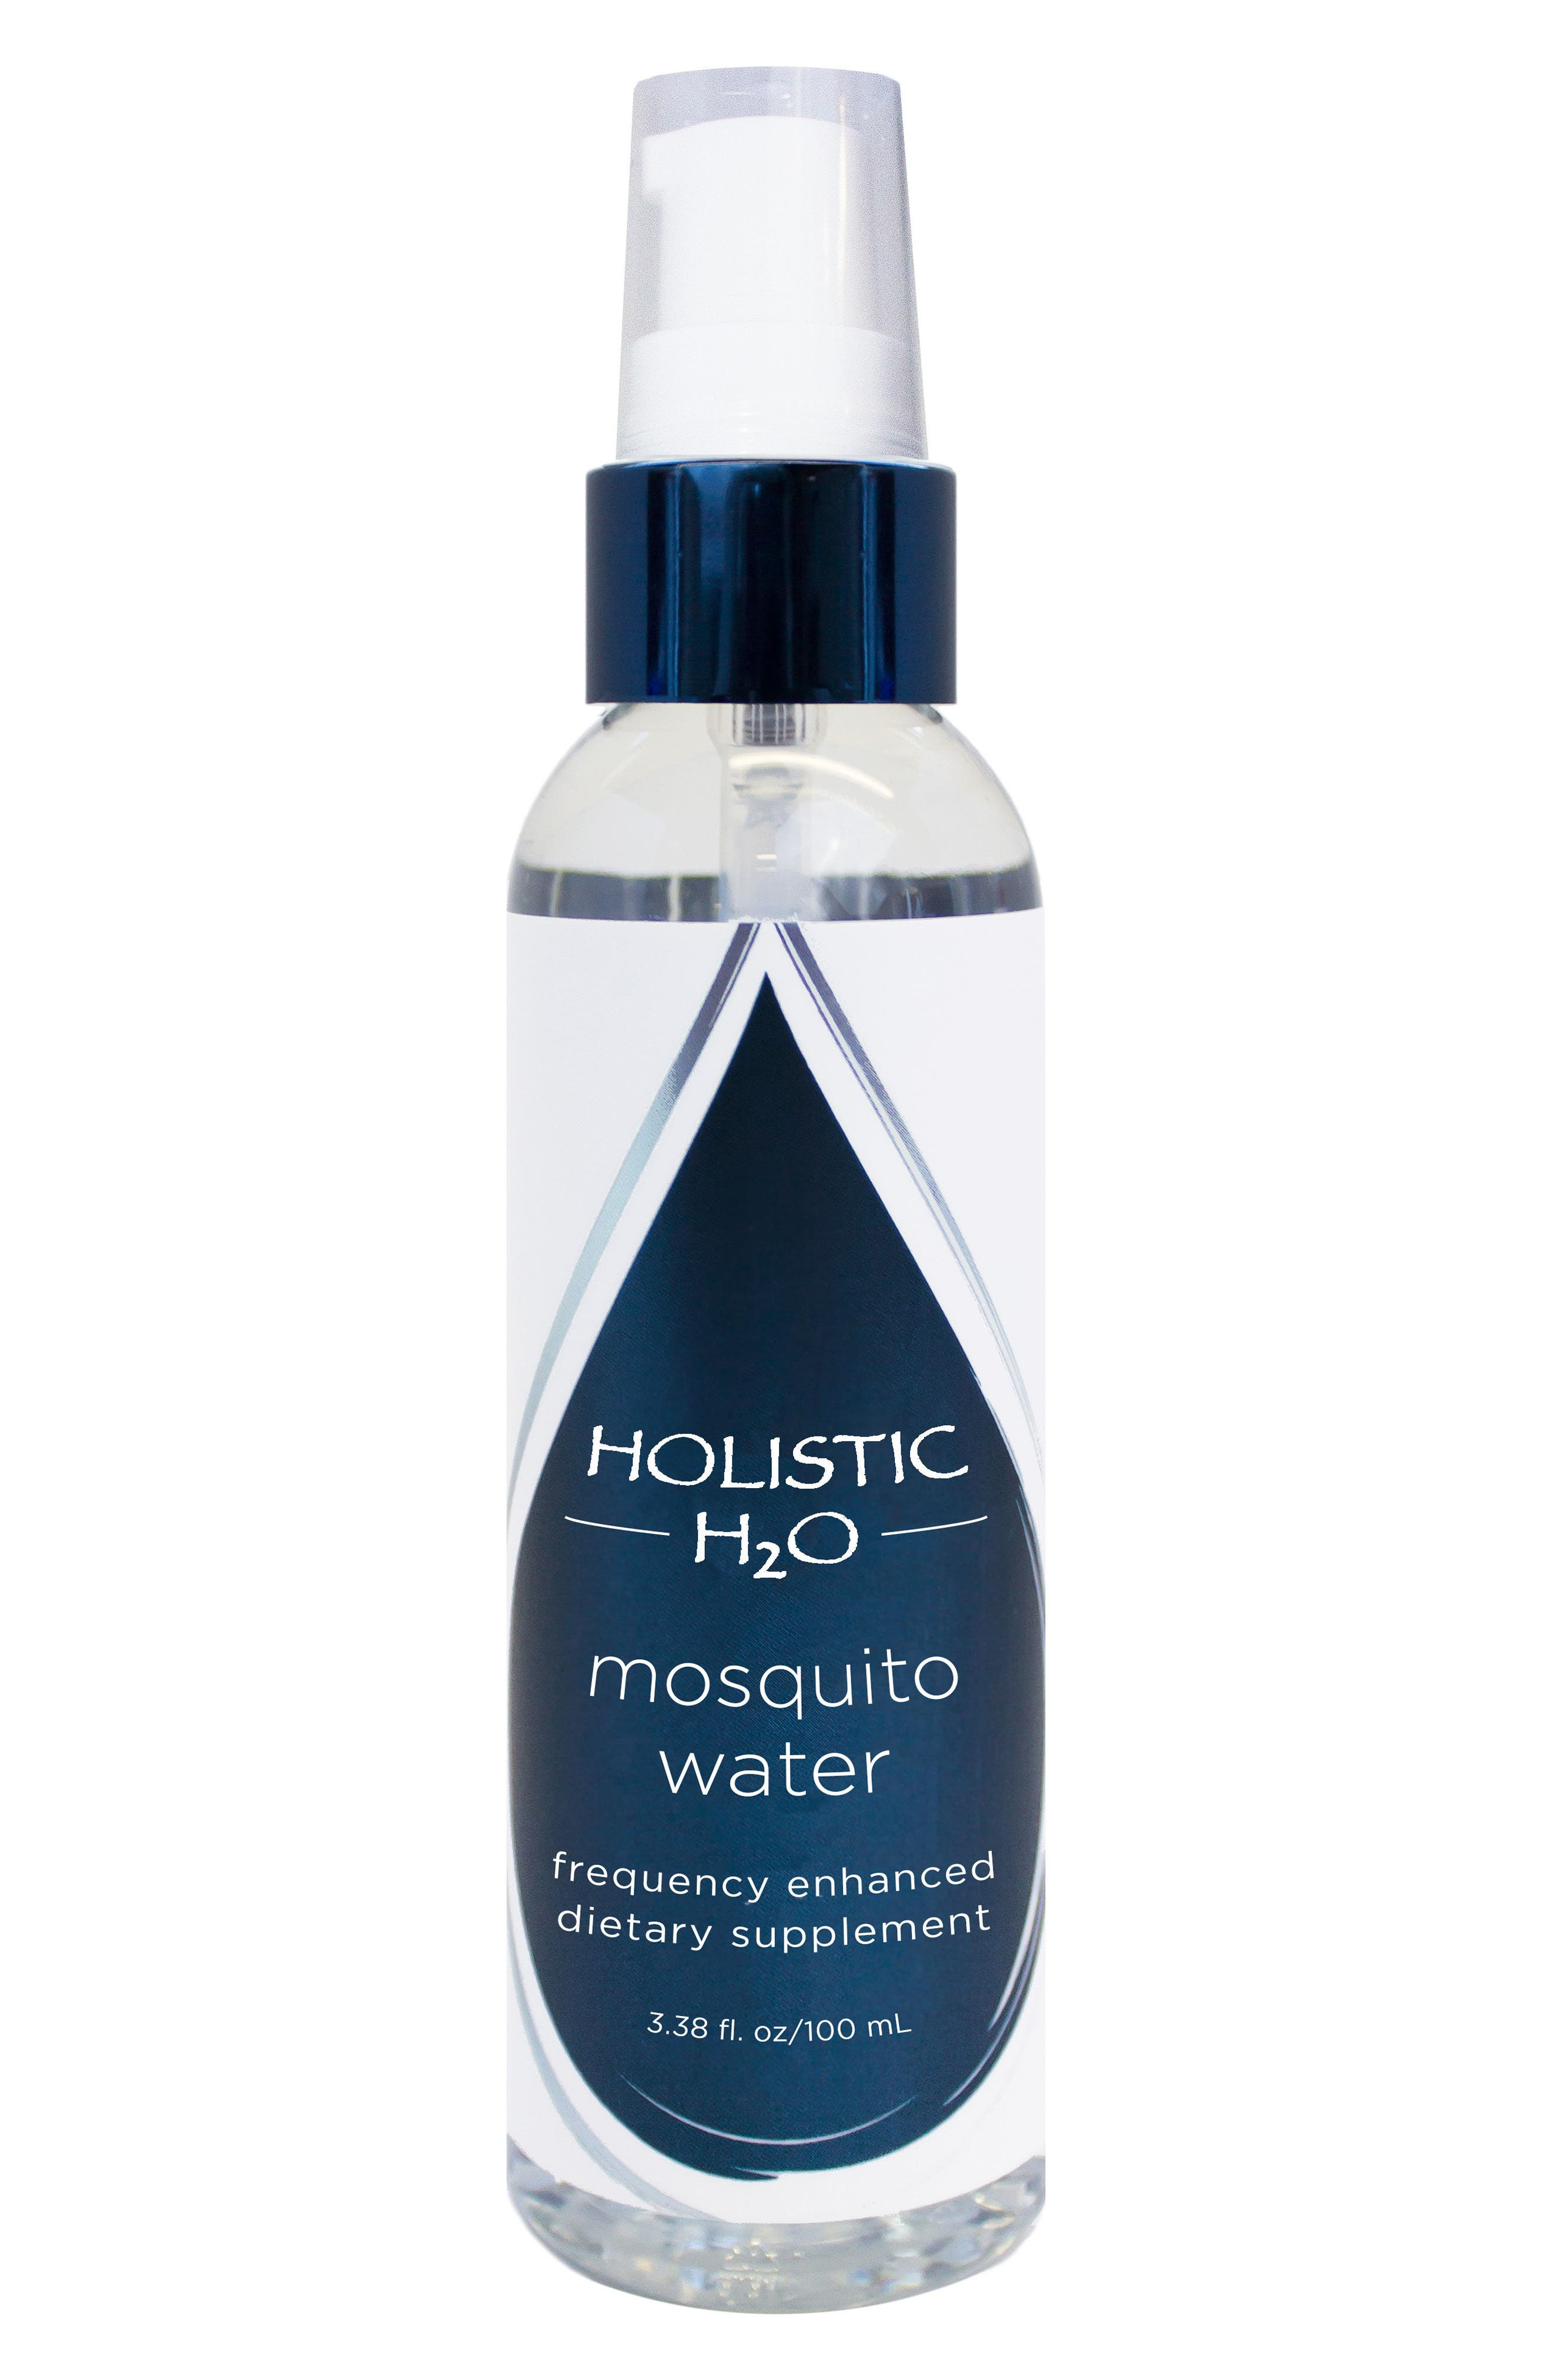 Holistic H20 Mosquito Water Frequency Enhanced Dietary Supplement